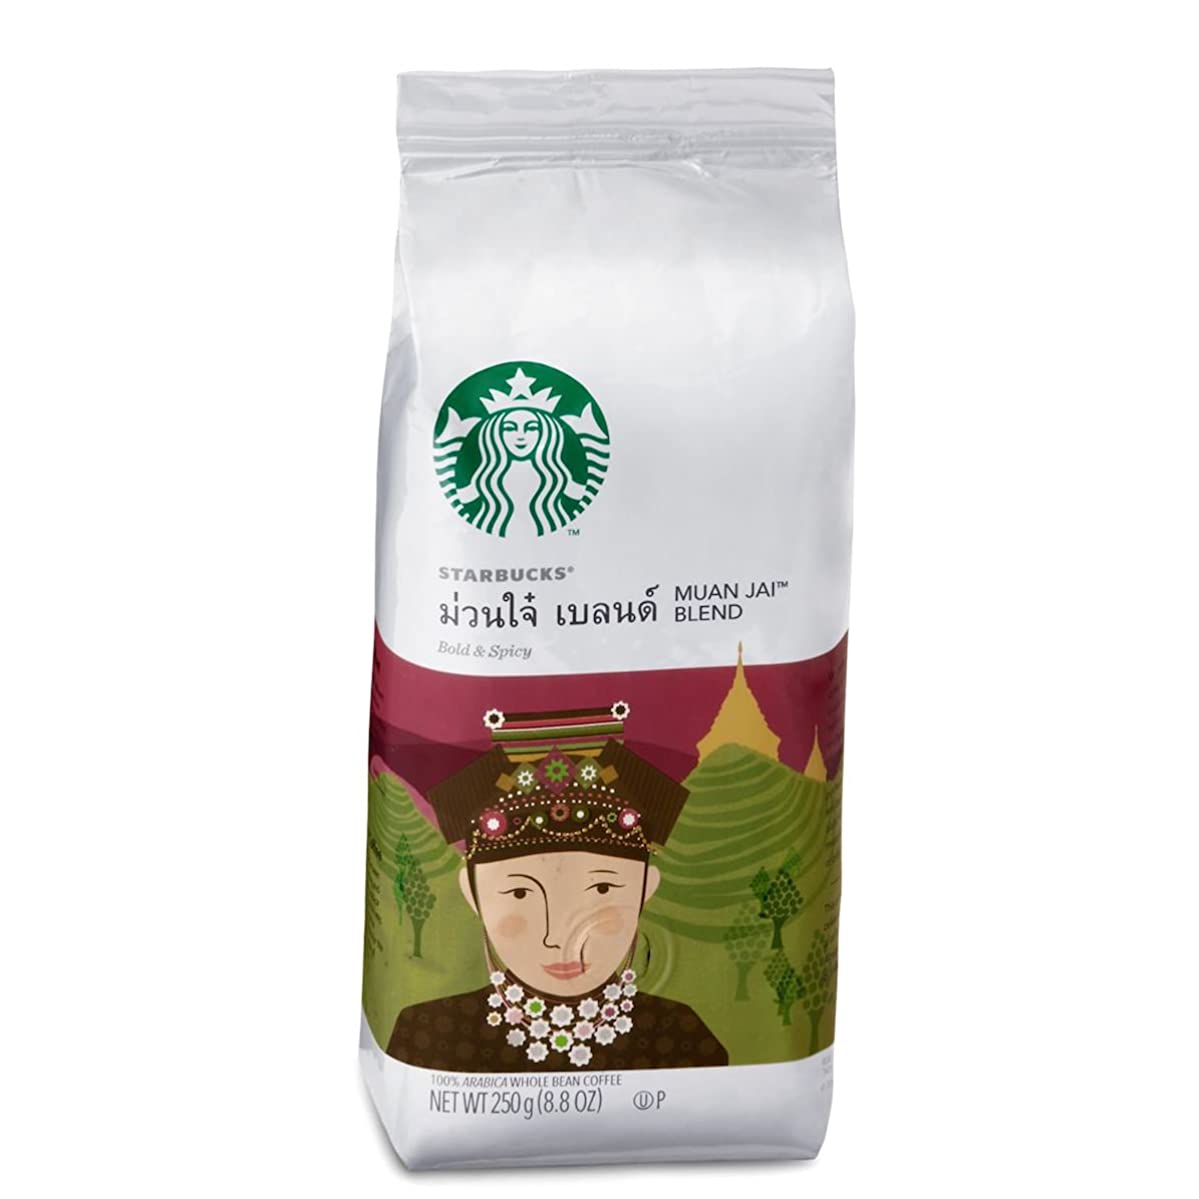 Starbucks Whole Bean- Muan Jai Blend 8.8 Ounce/250g,A bold blend of Arabica coffee from Thailand with lingering, earthy spiciness in the finish zehjdypwjjy8